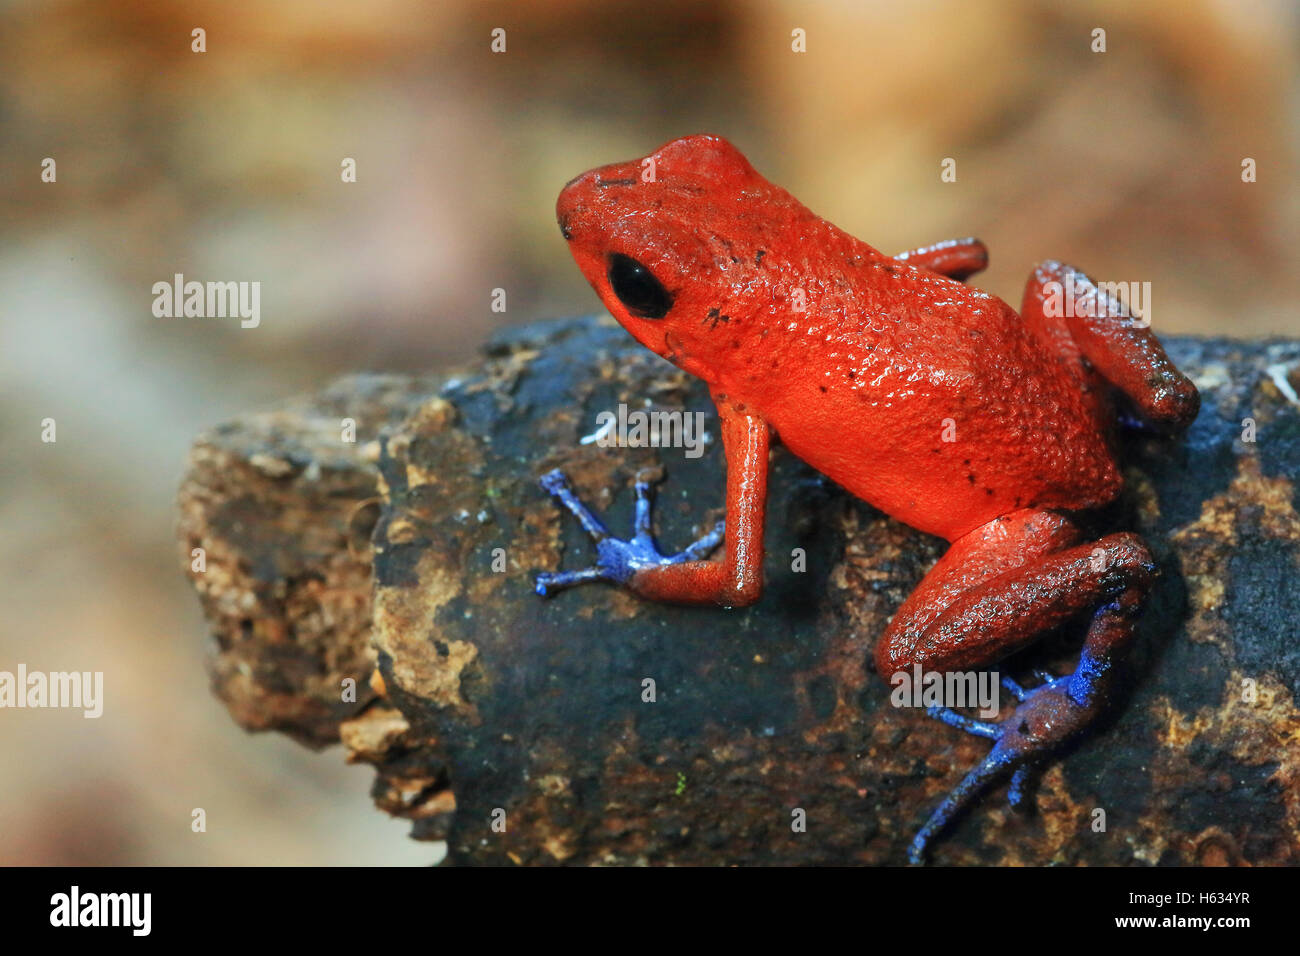 Jean bleu poison dart frog (Oophaga pumilio) in lowland rainforest. Cerro de Tortuguero, Costa Rica. Photo Stock